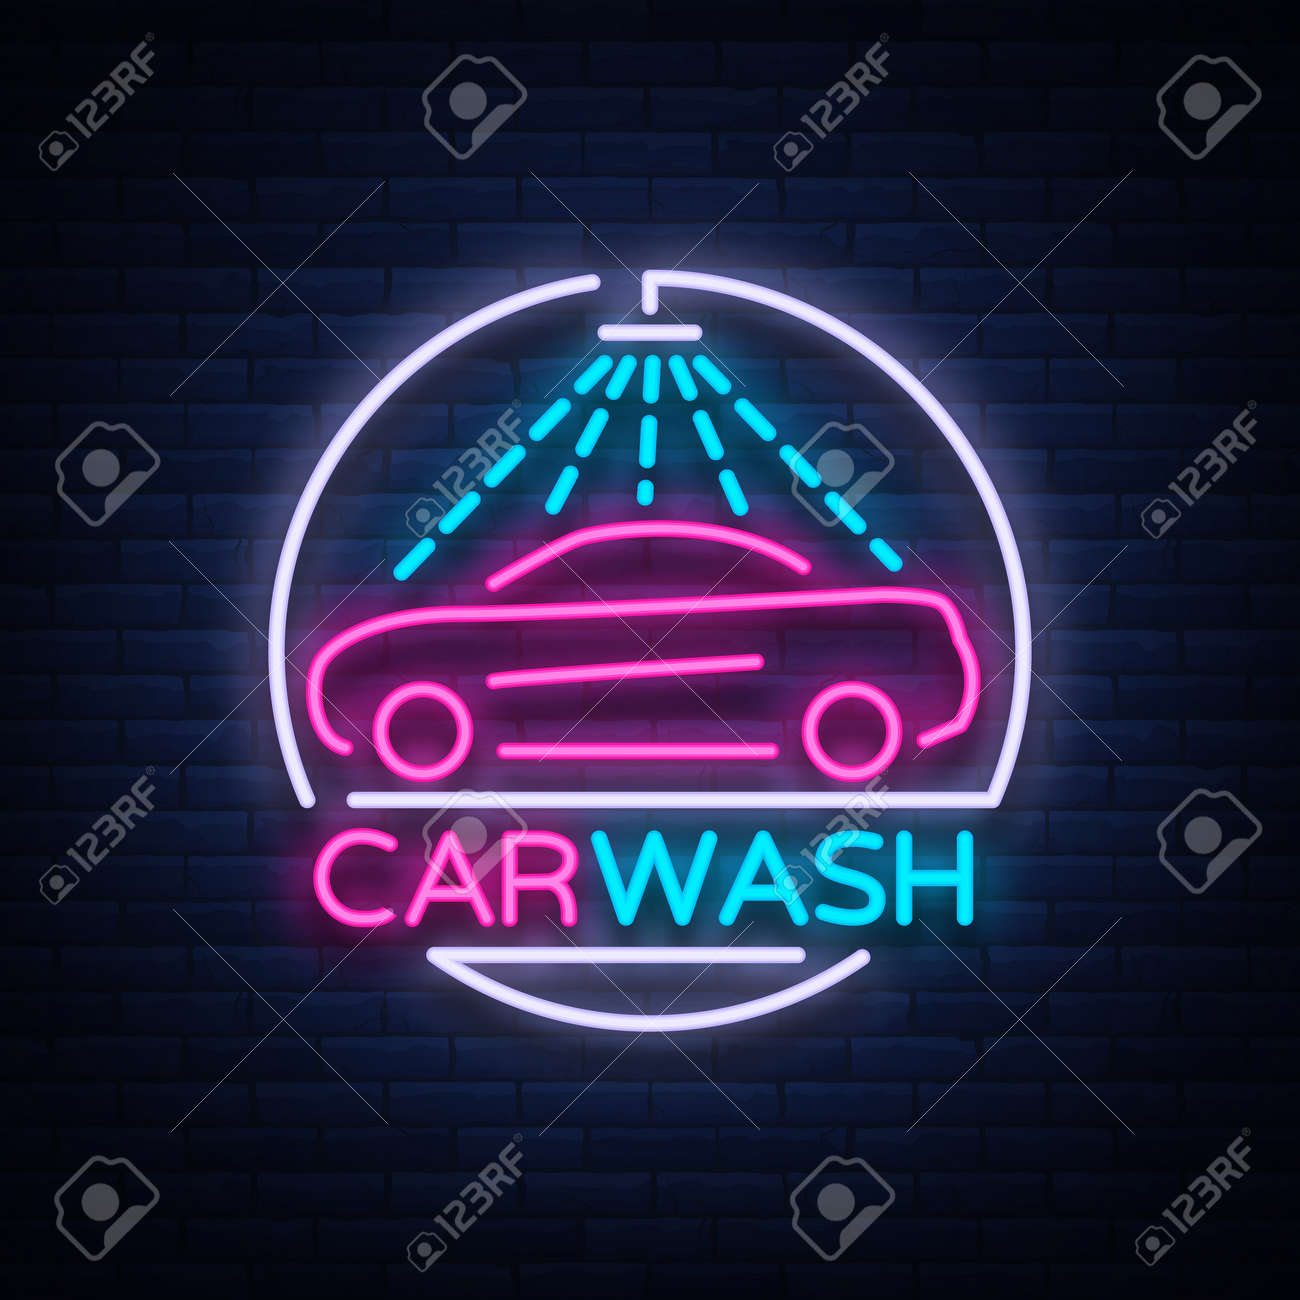 Car Wash Logo Design Emblem In Neon Style Vector Illustration